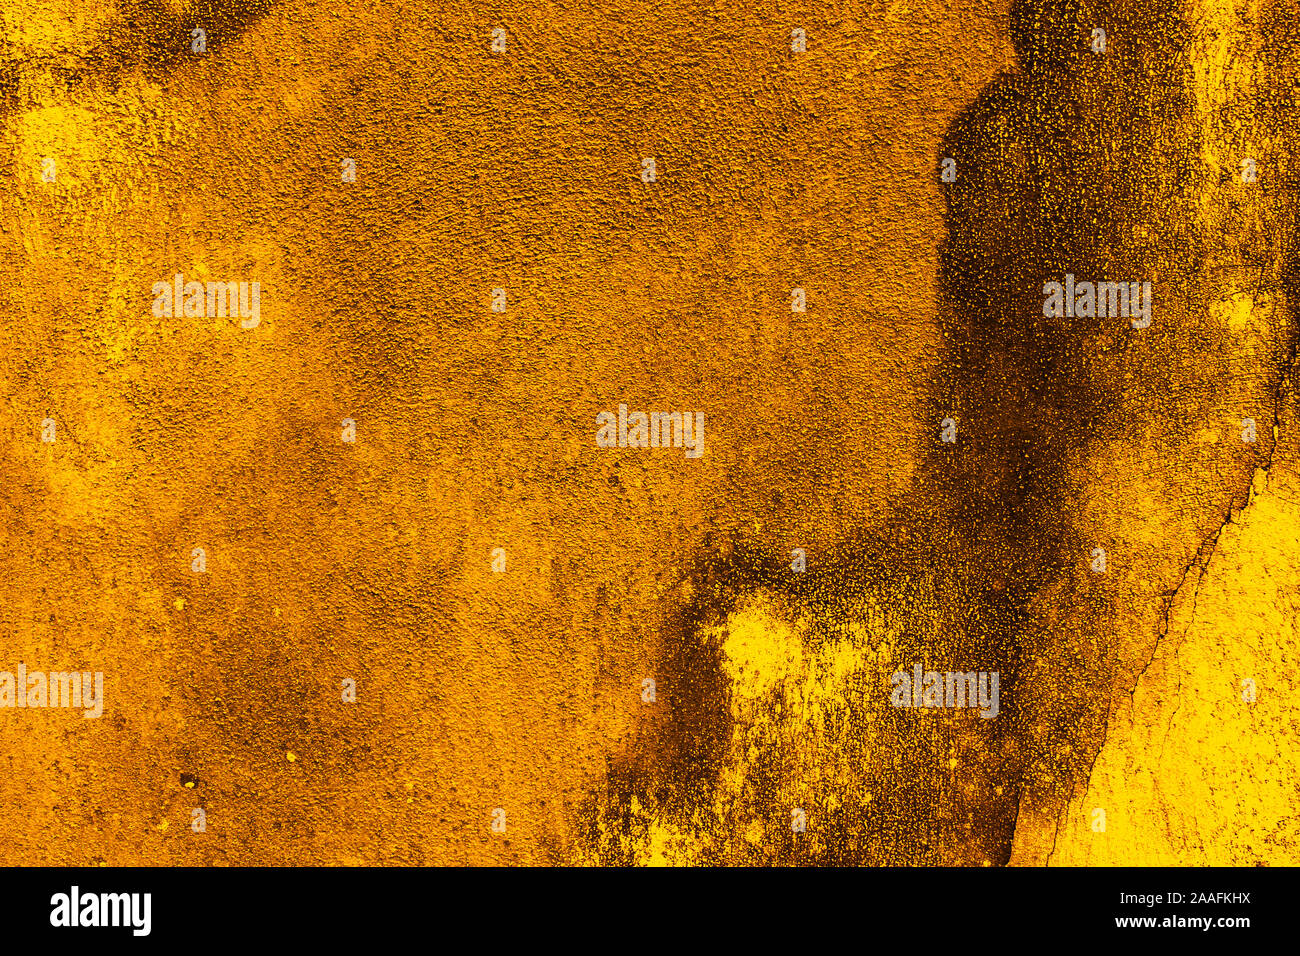 Colored Background With Marbled Textures Of Different Shades Of Gold And Yellow Stock Photo Alamy